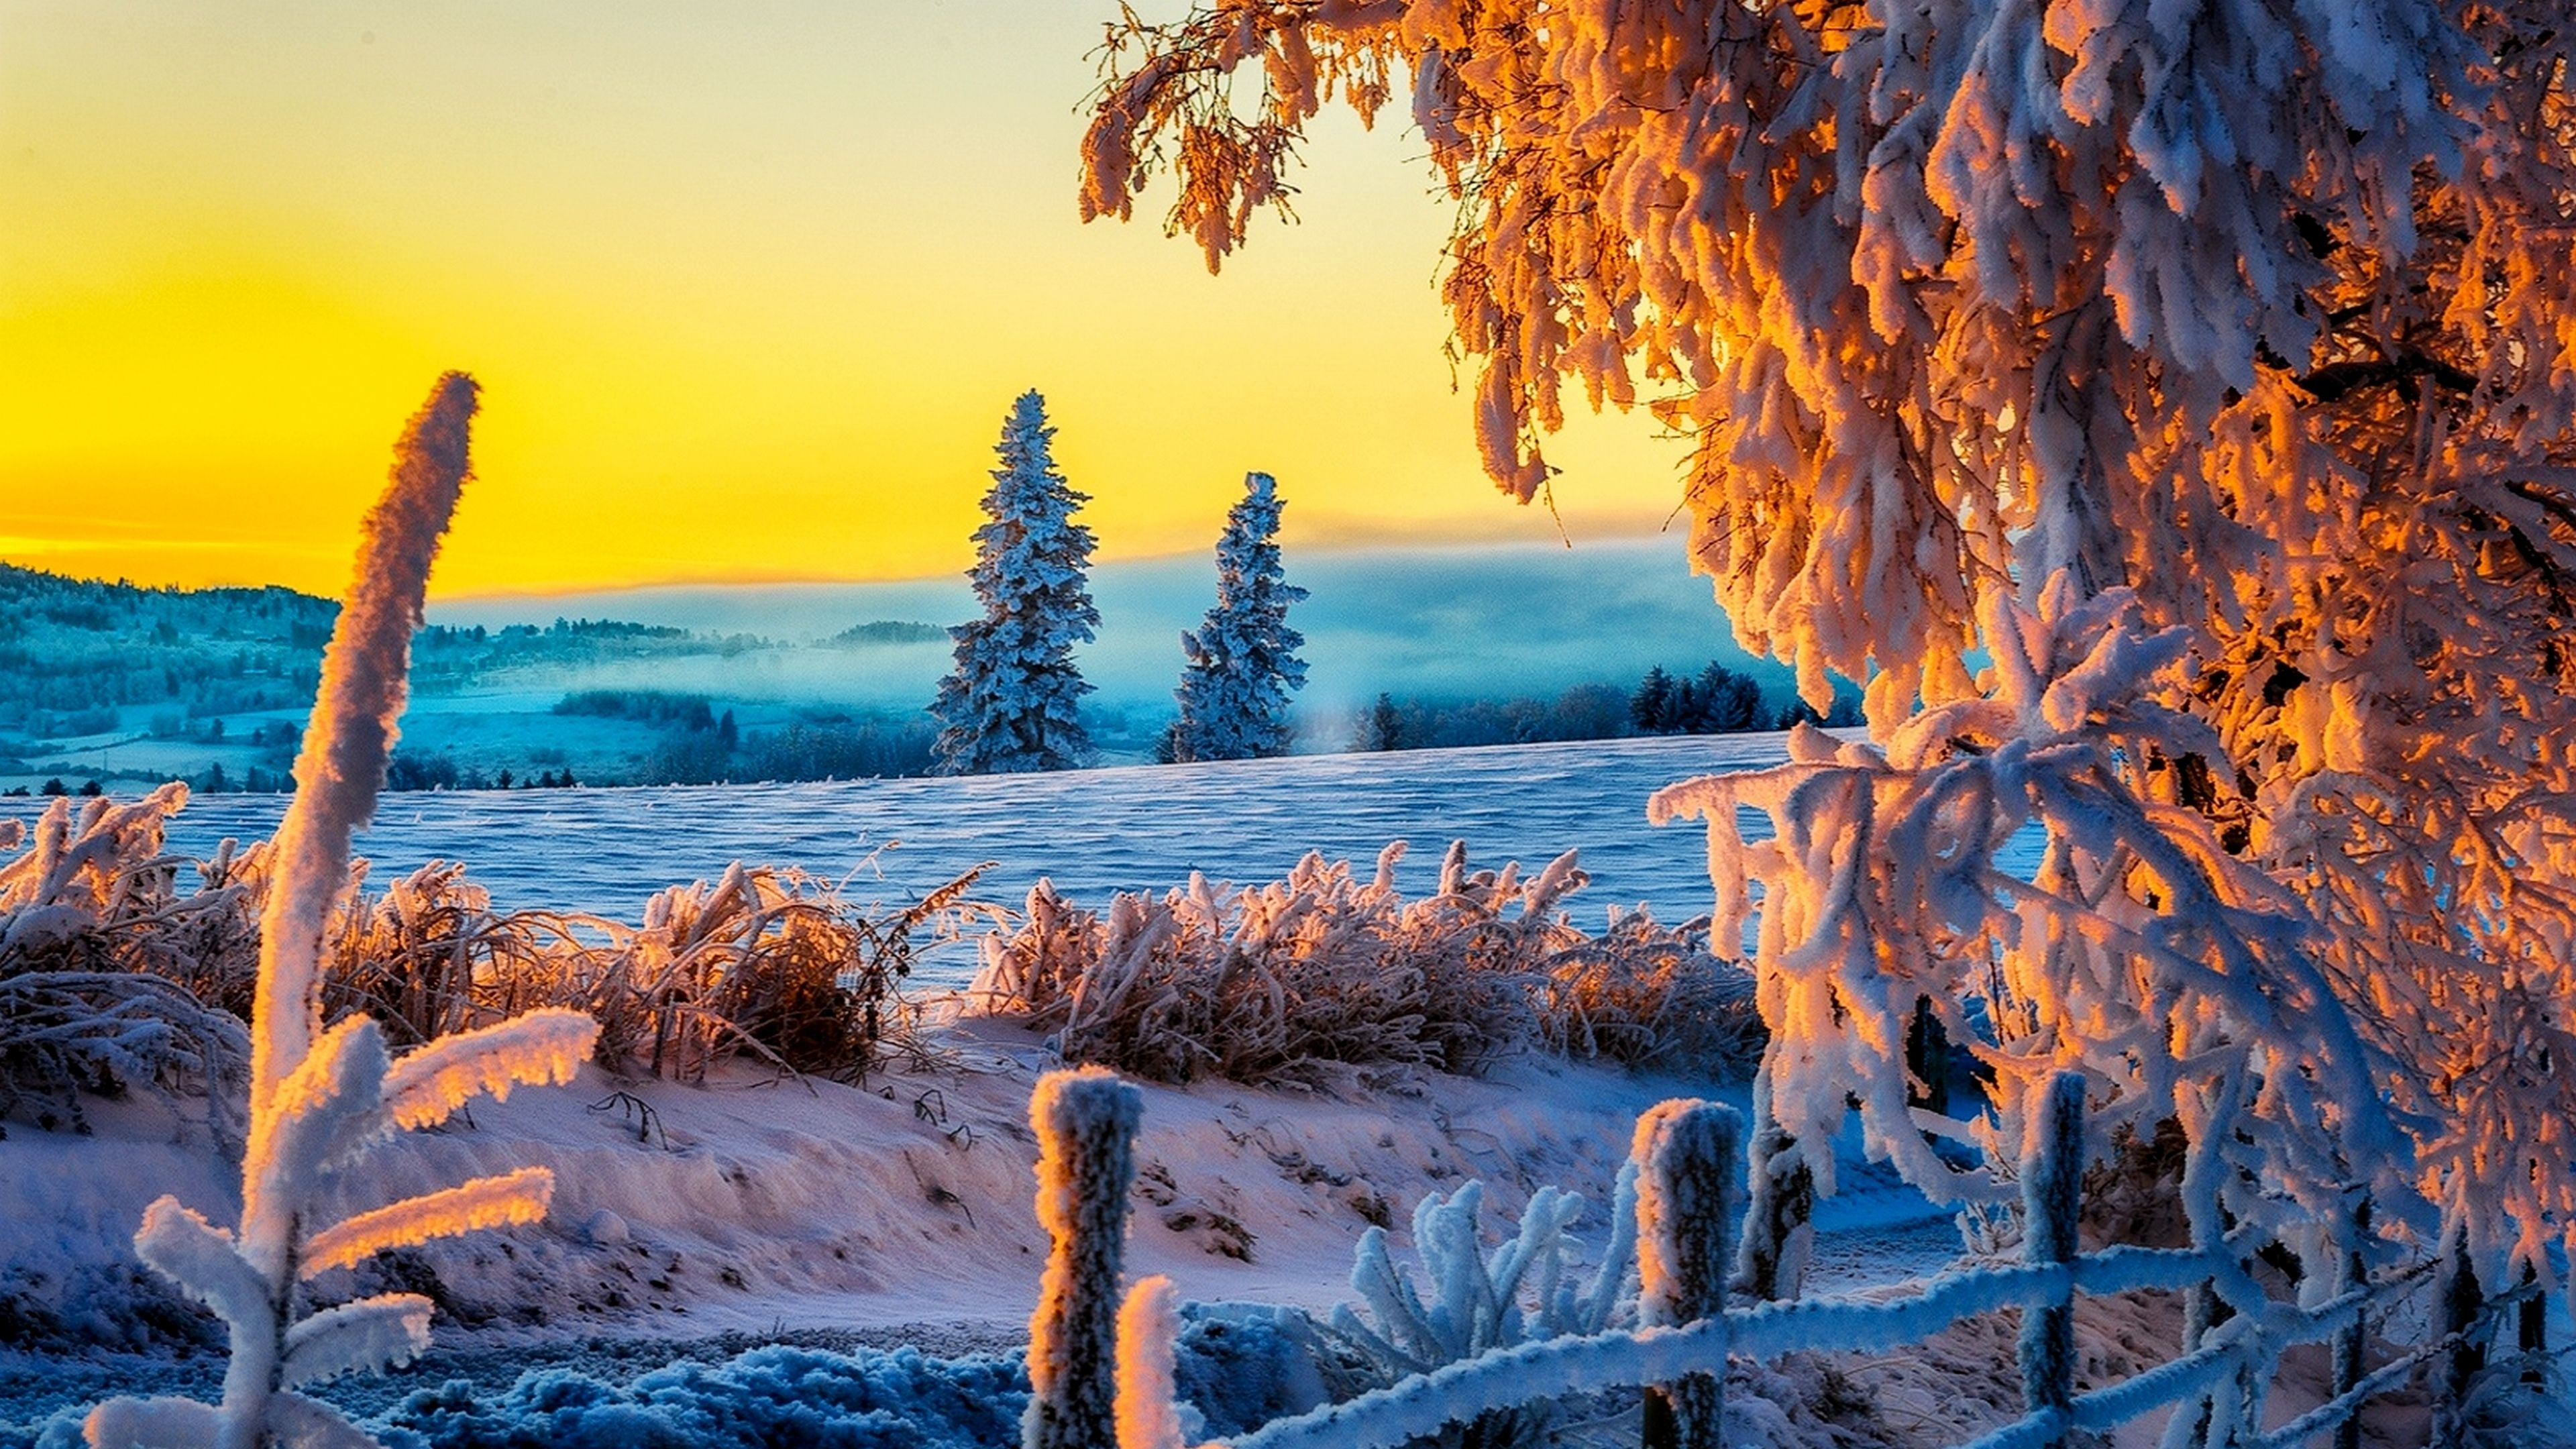 4k Backgrounds Is Cool Wallpapers Winter landscape